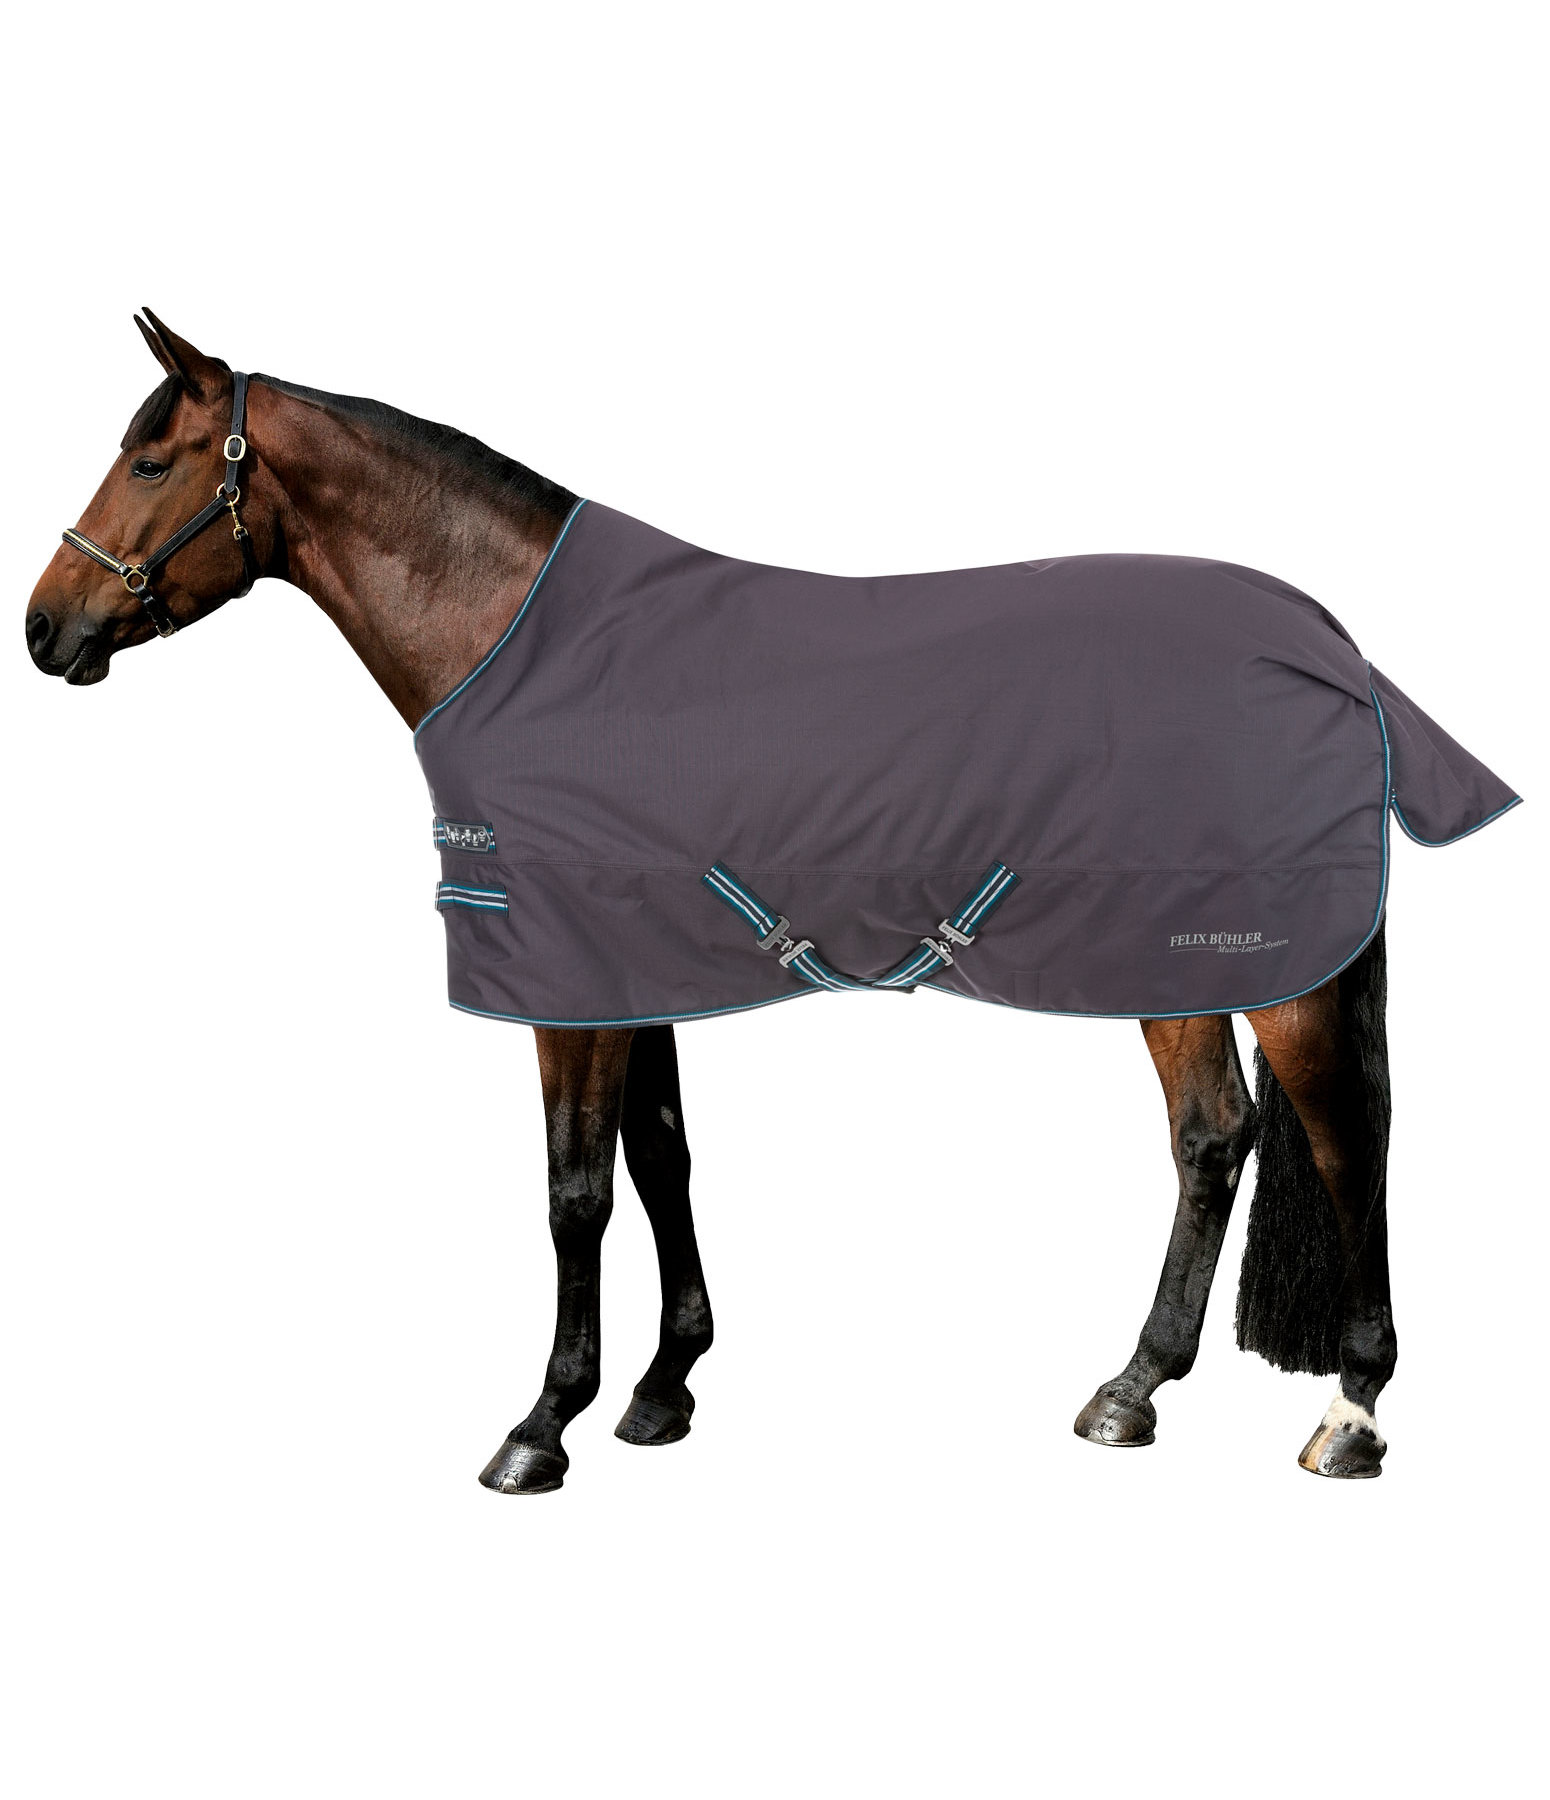 4 in 1 Regular Neck Turnout Rug with multi-layer system, 0-300g